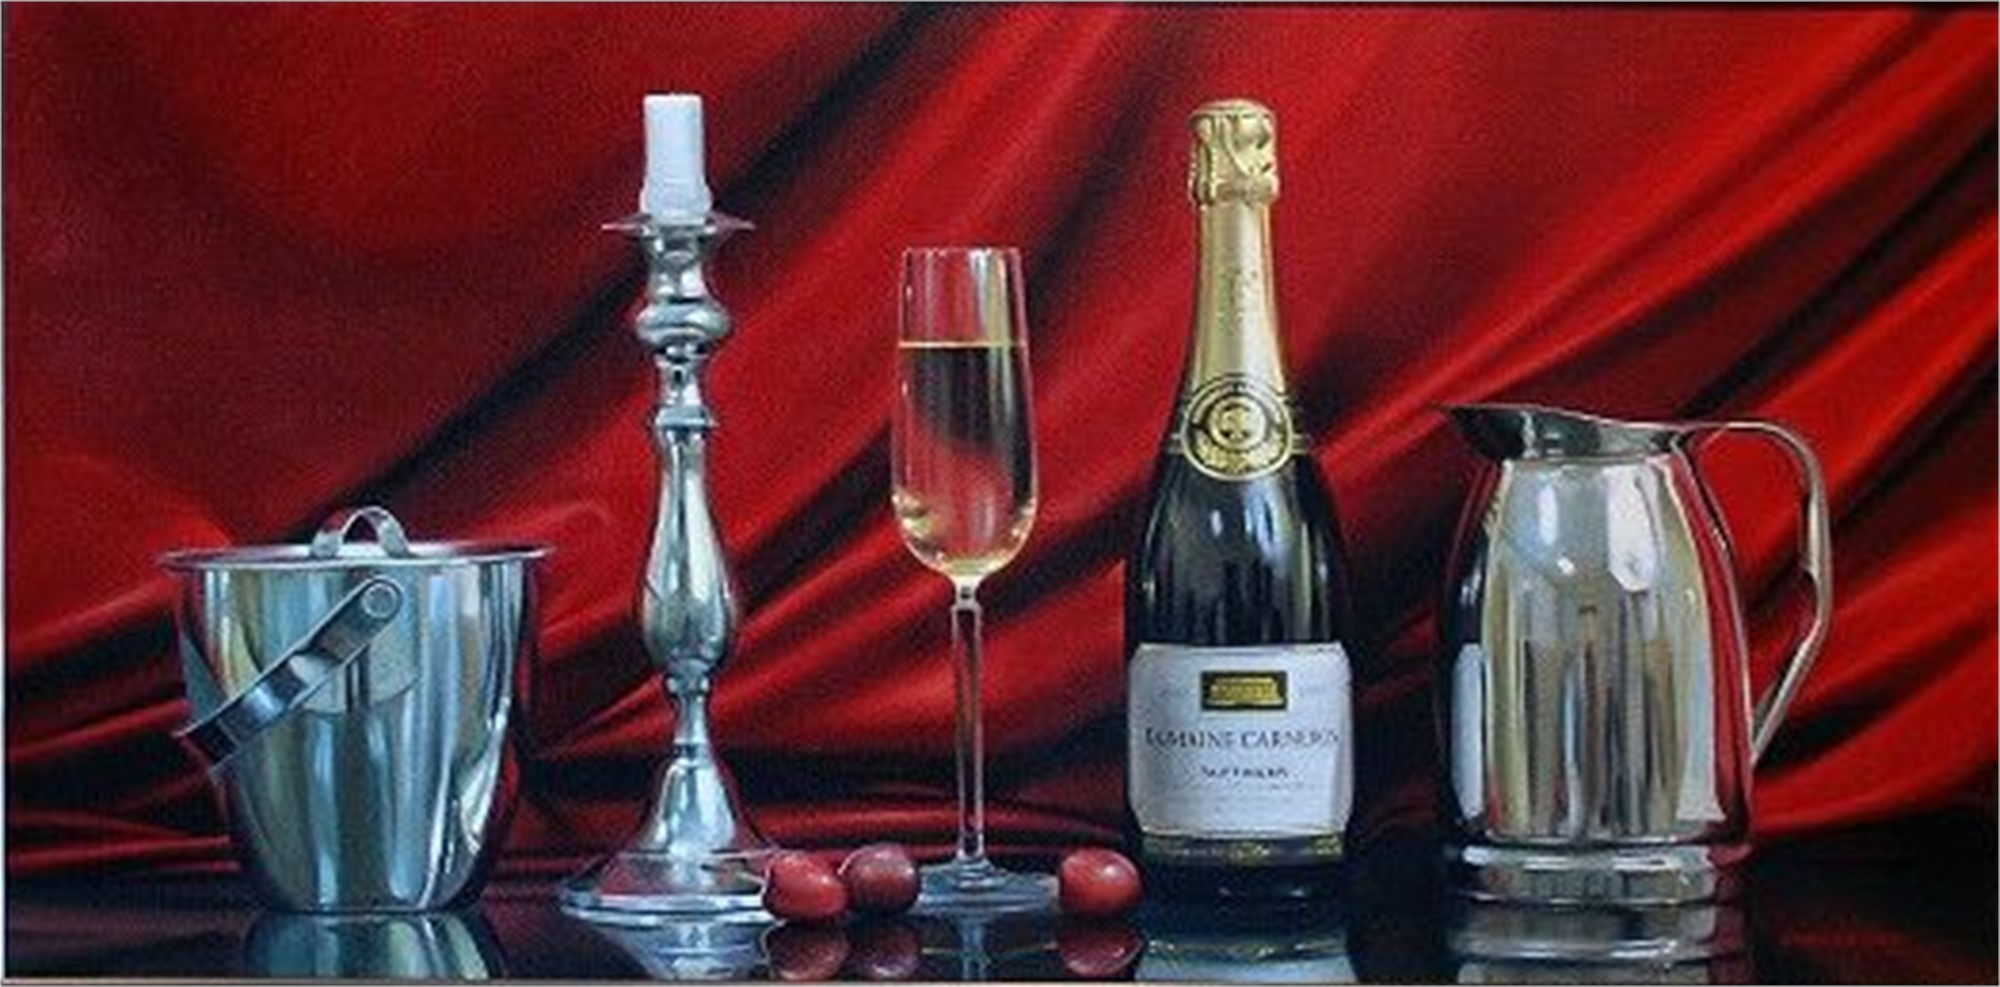 Champagne and Candle by Alexander Sheversky